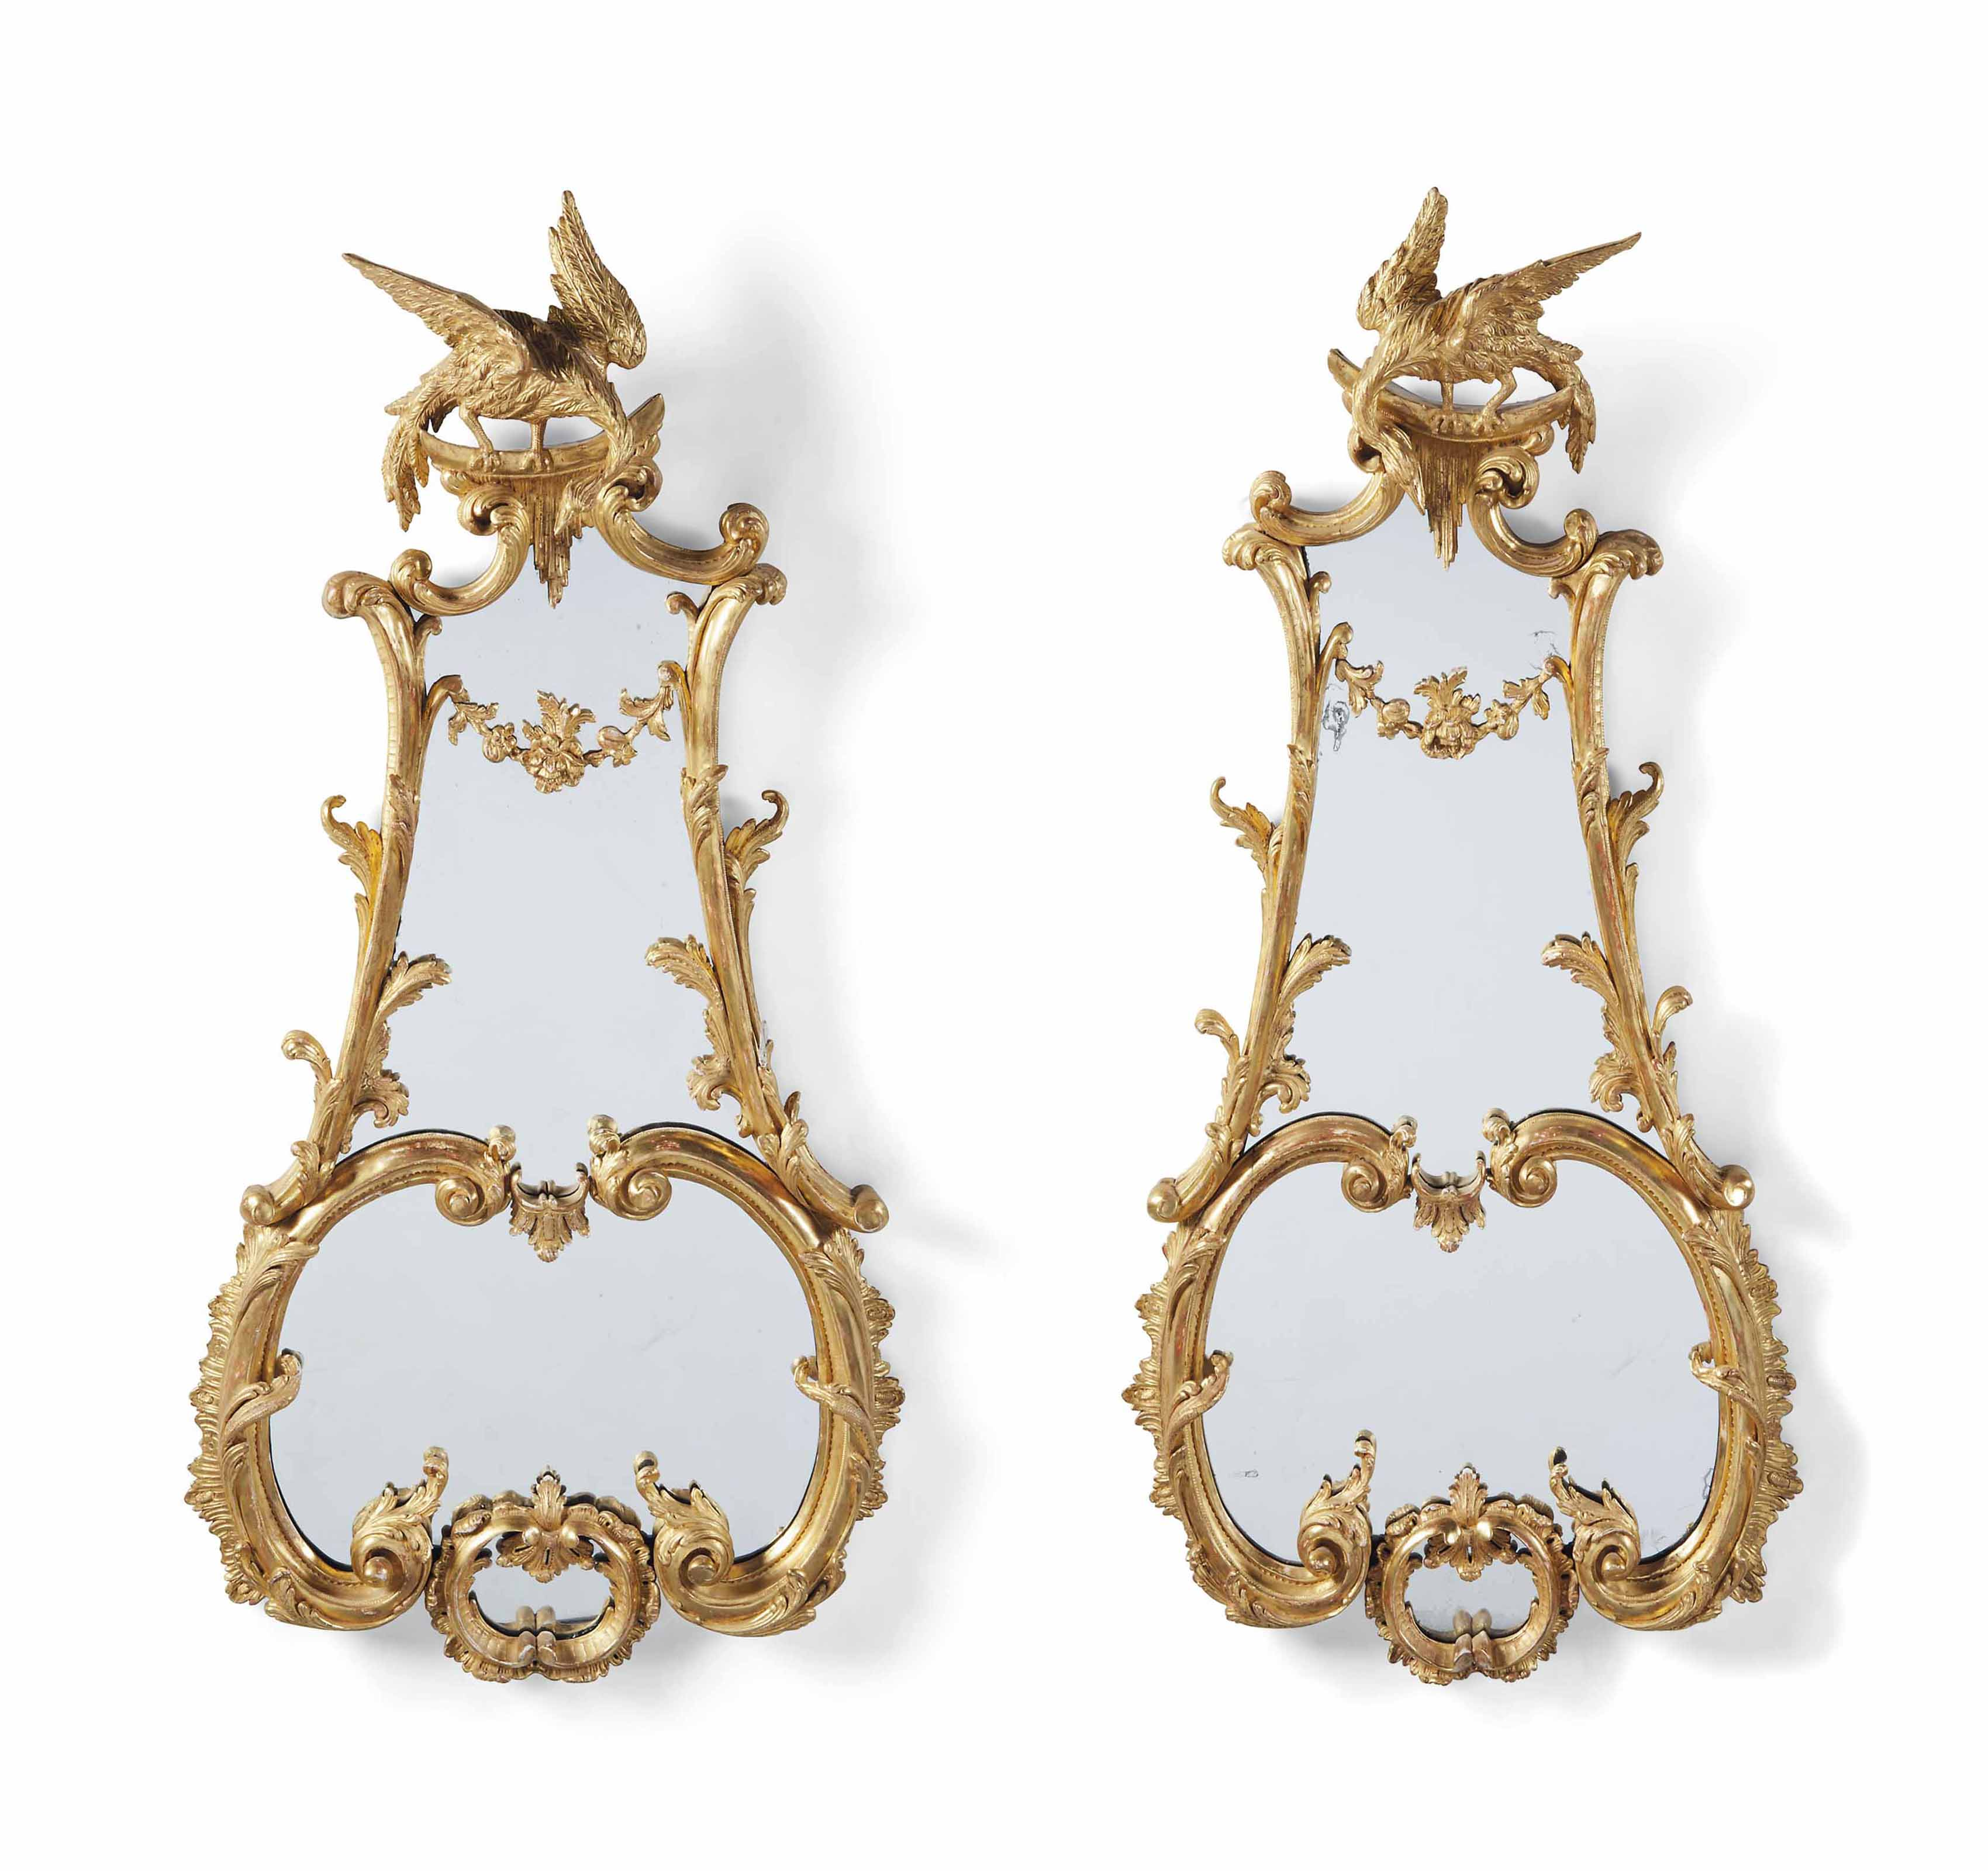 A PAIR OF LARGE GILTWOOD LYRE-